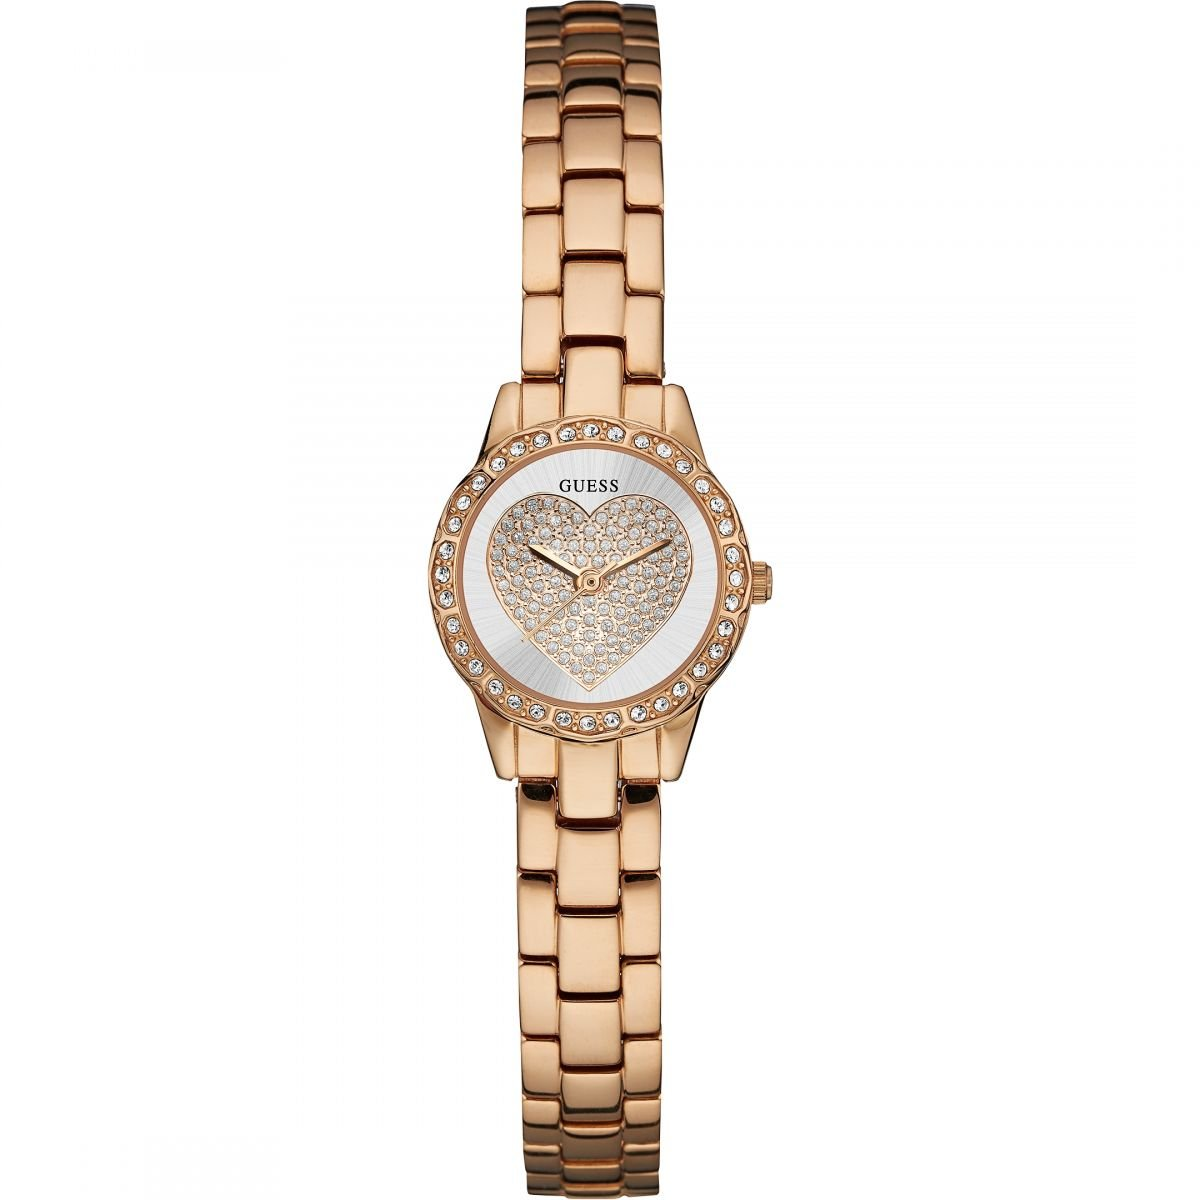 GUESS HARPER watch W0730L3 by GUESS